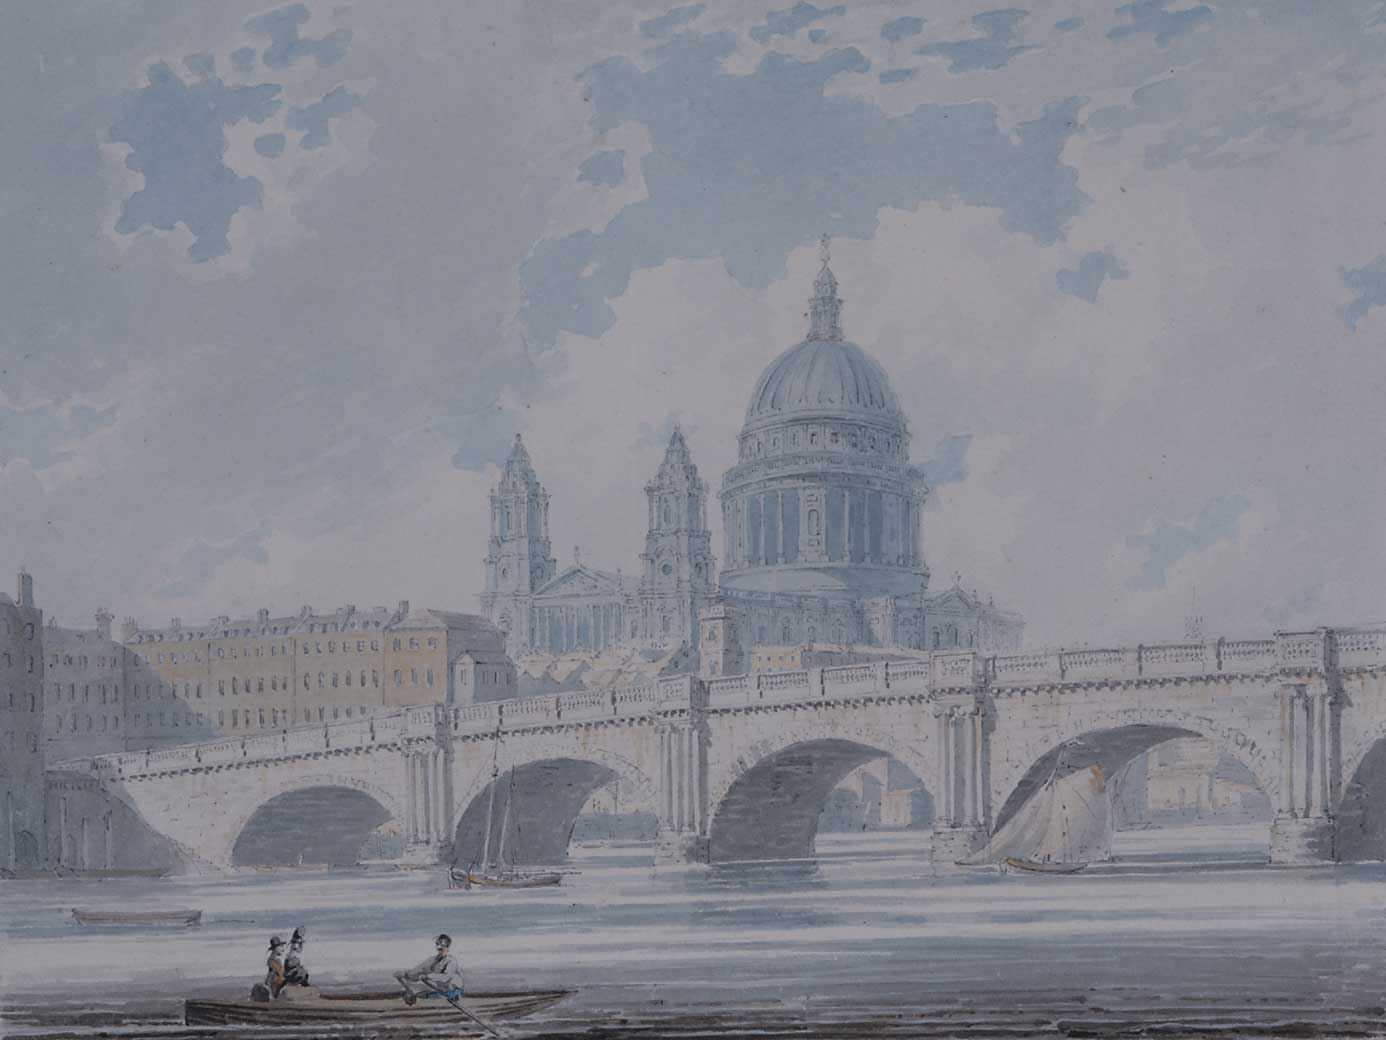 St. Paul's Cathedral from Old Blackfriars Bridge